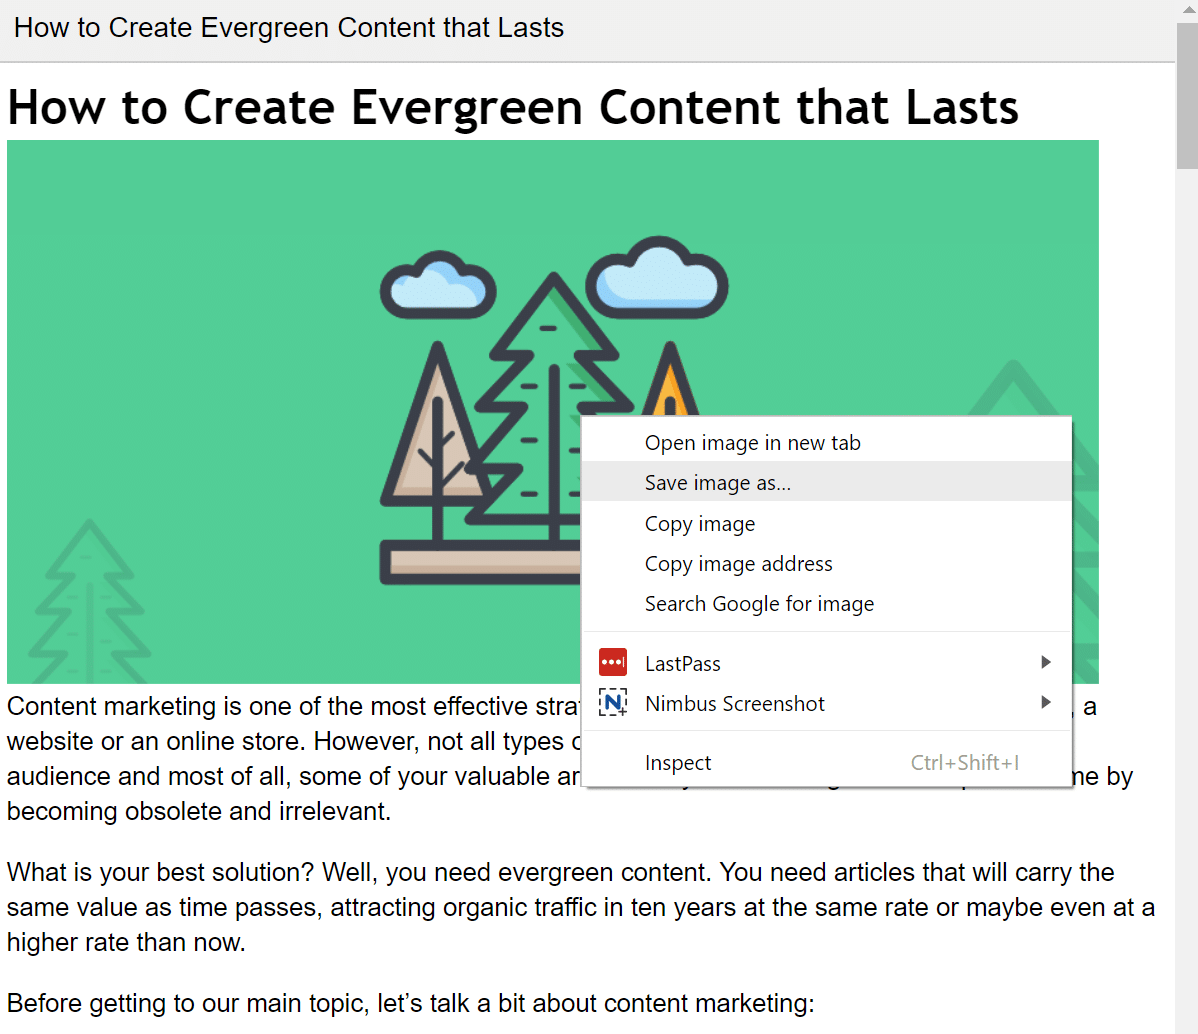 Save images from published link